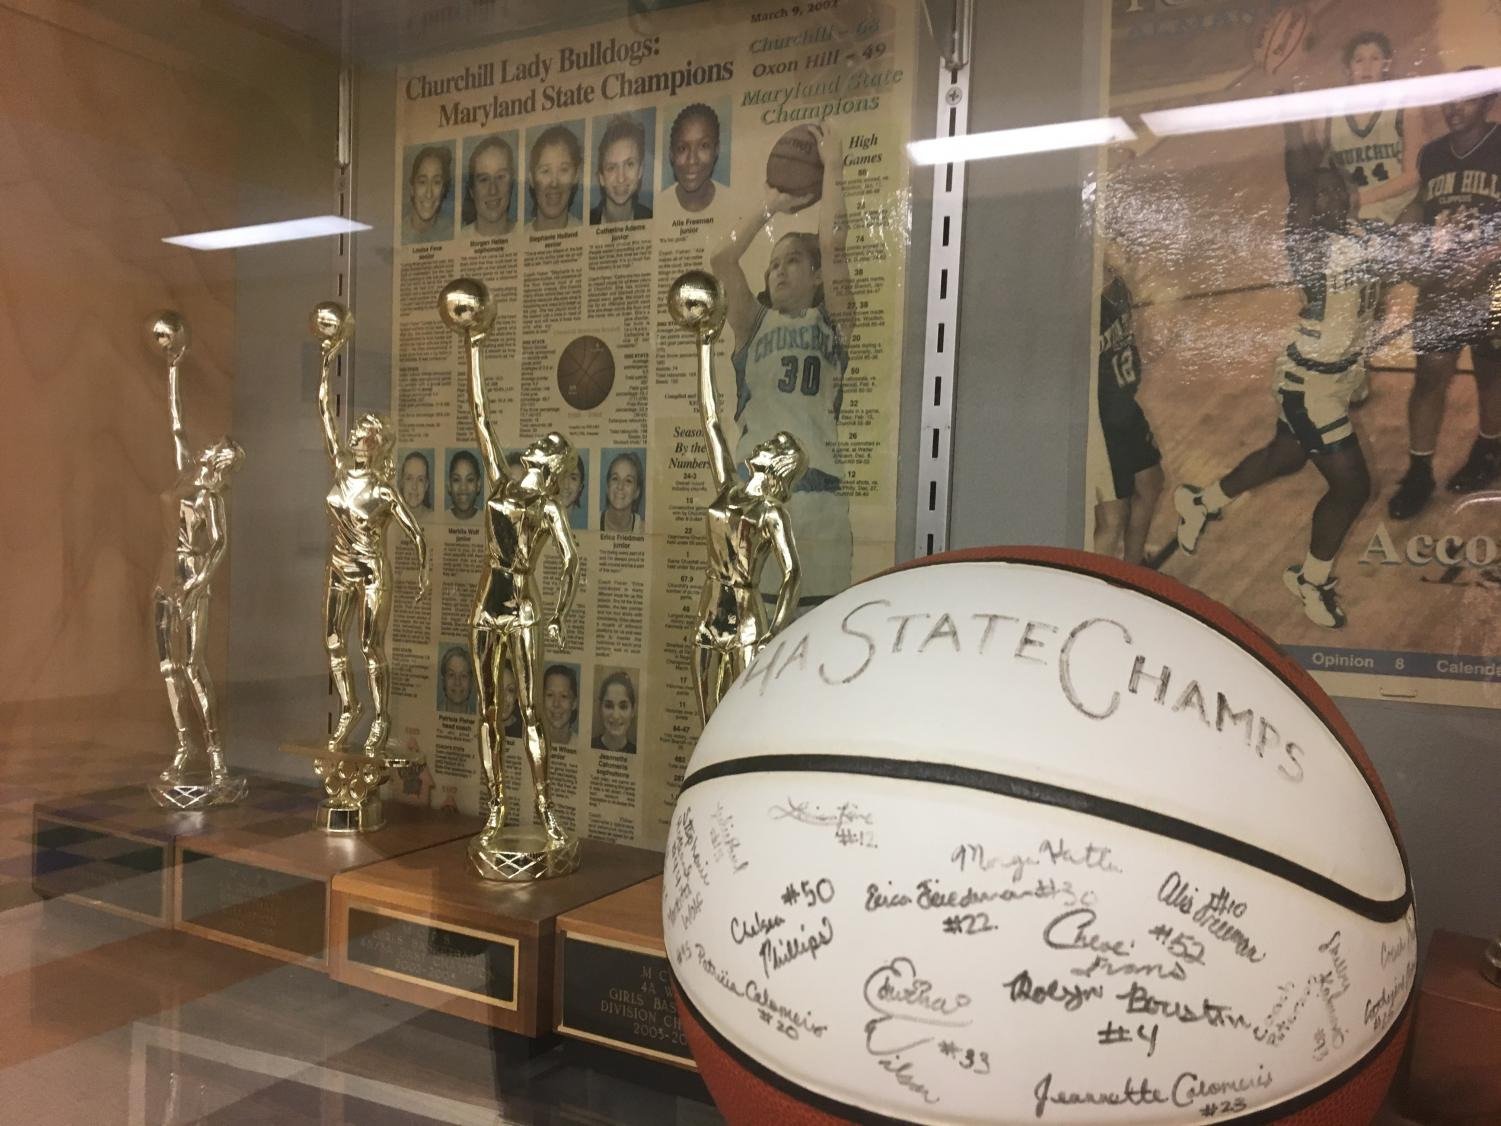 The state championship trophies of the WCHS girls varsity basketball team displayed proudly in front of a news article snippet from 2002 announcing the team's success.